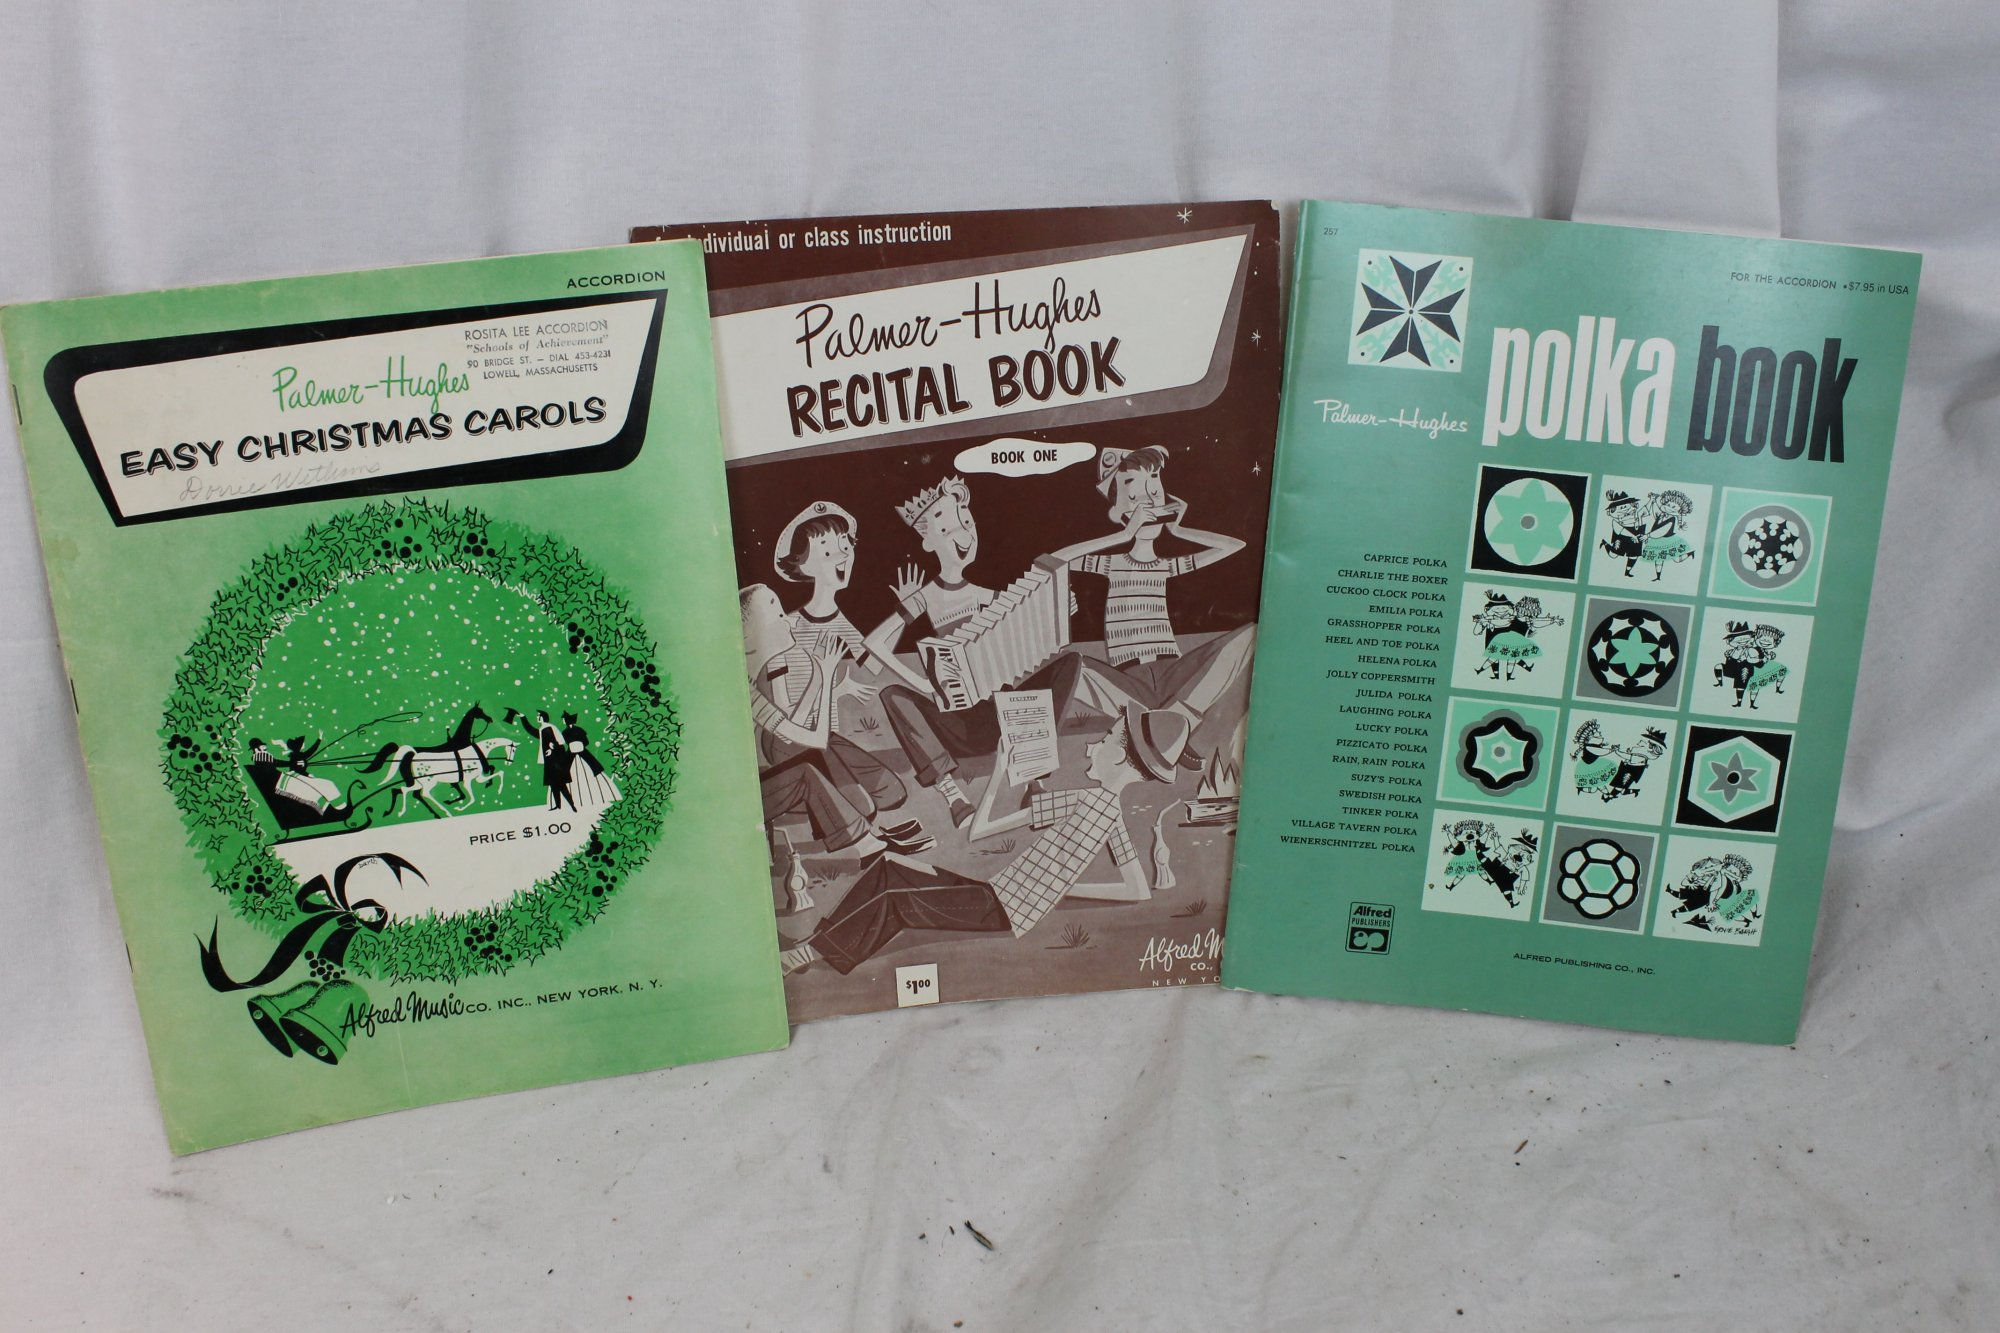 Palmer Hughes Accordion Books Lot Recital Book 1, Easy Christmas Carols, Polka Book